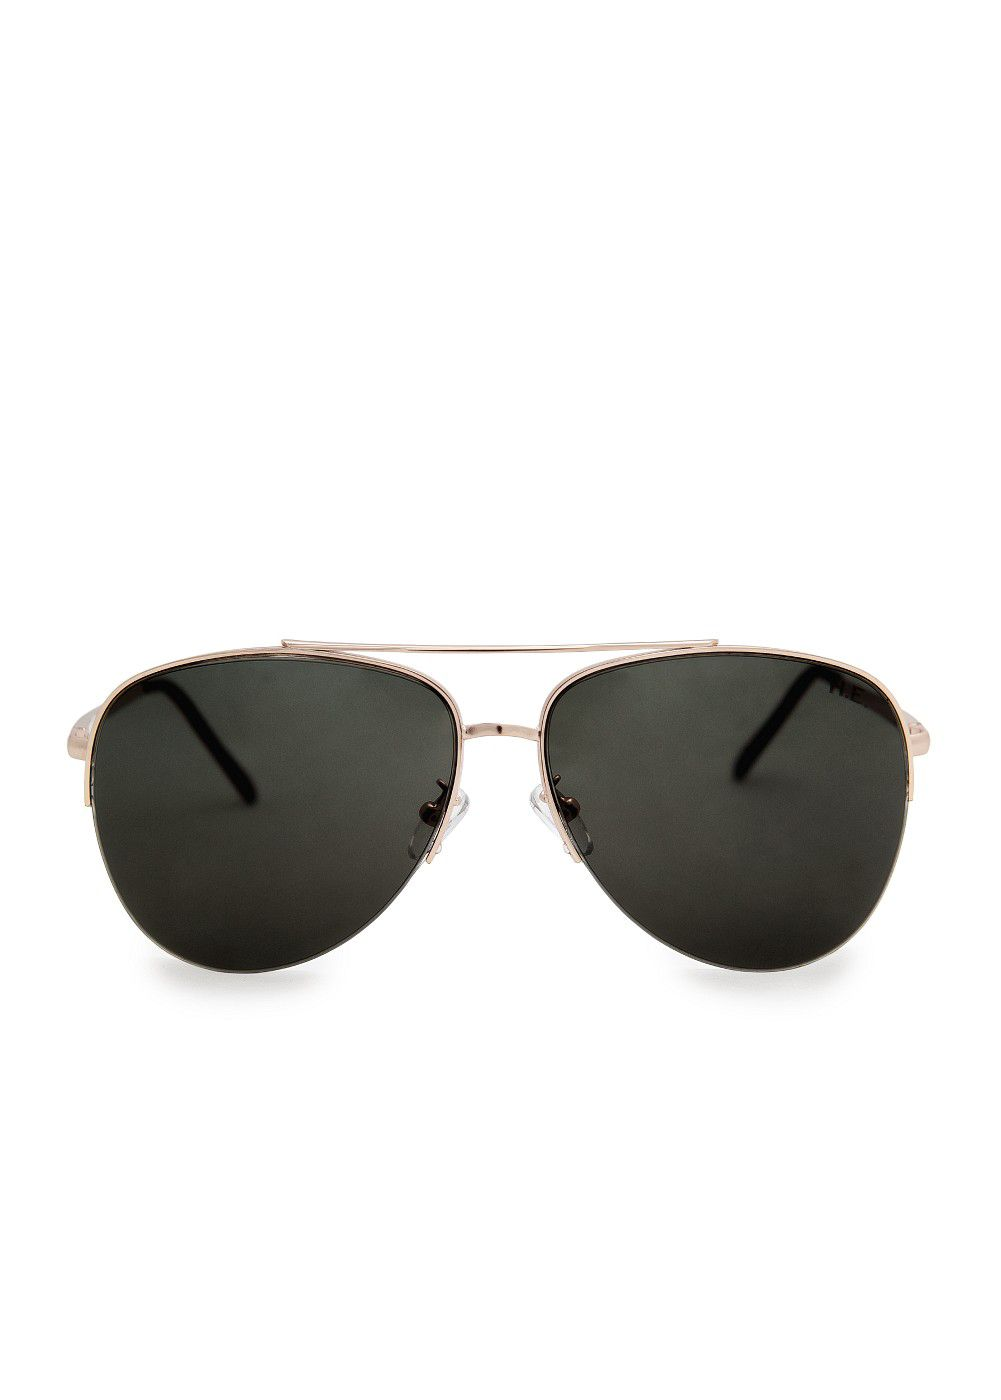 Metallic fram aviator sunglasses